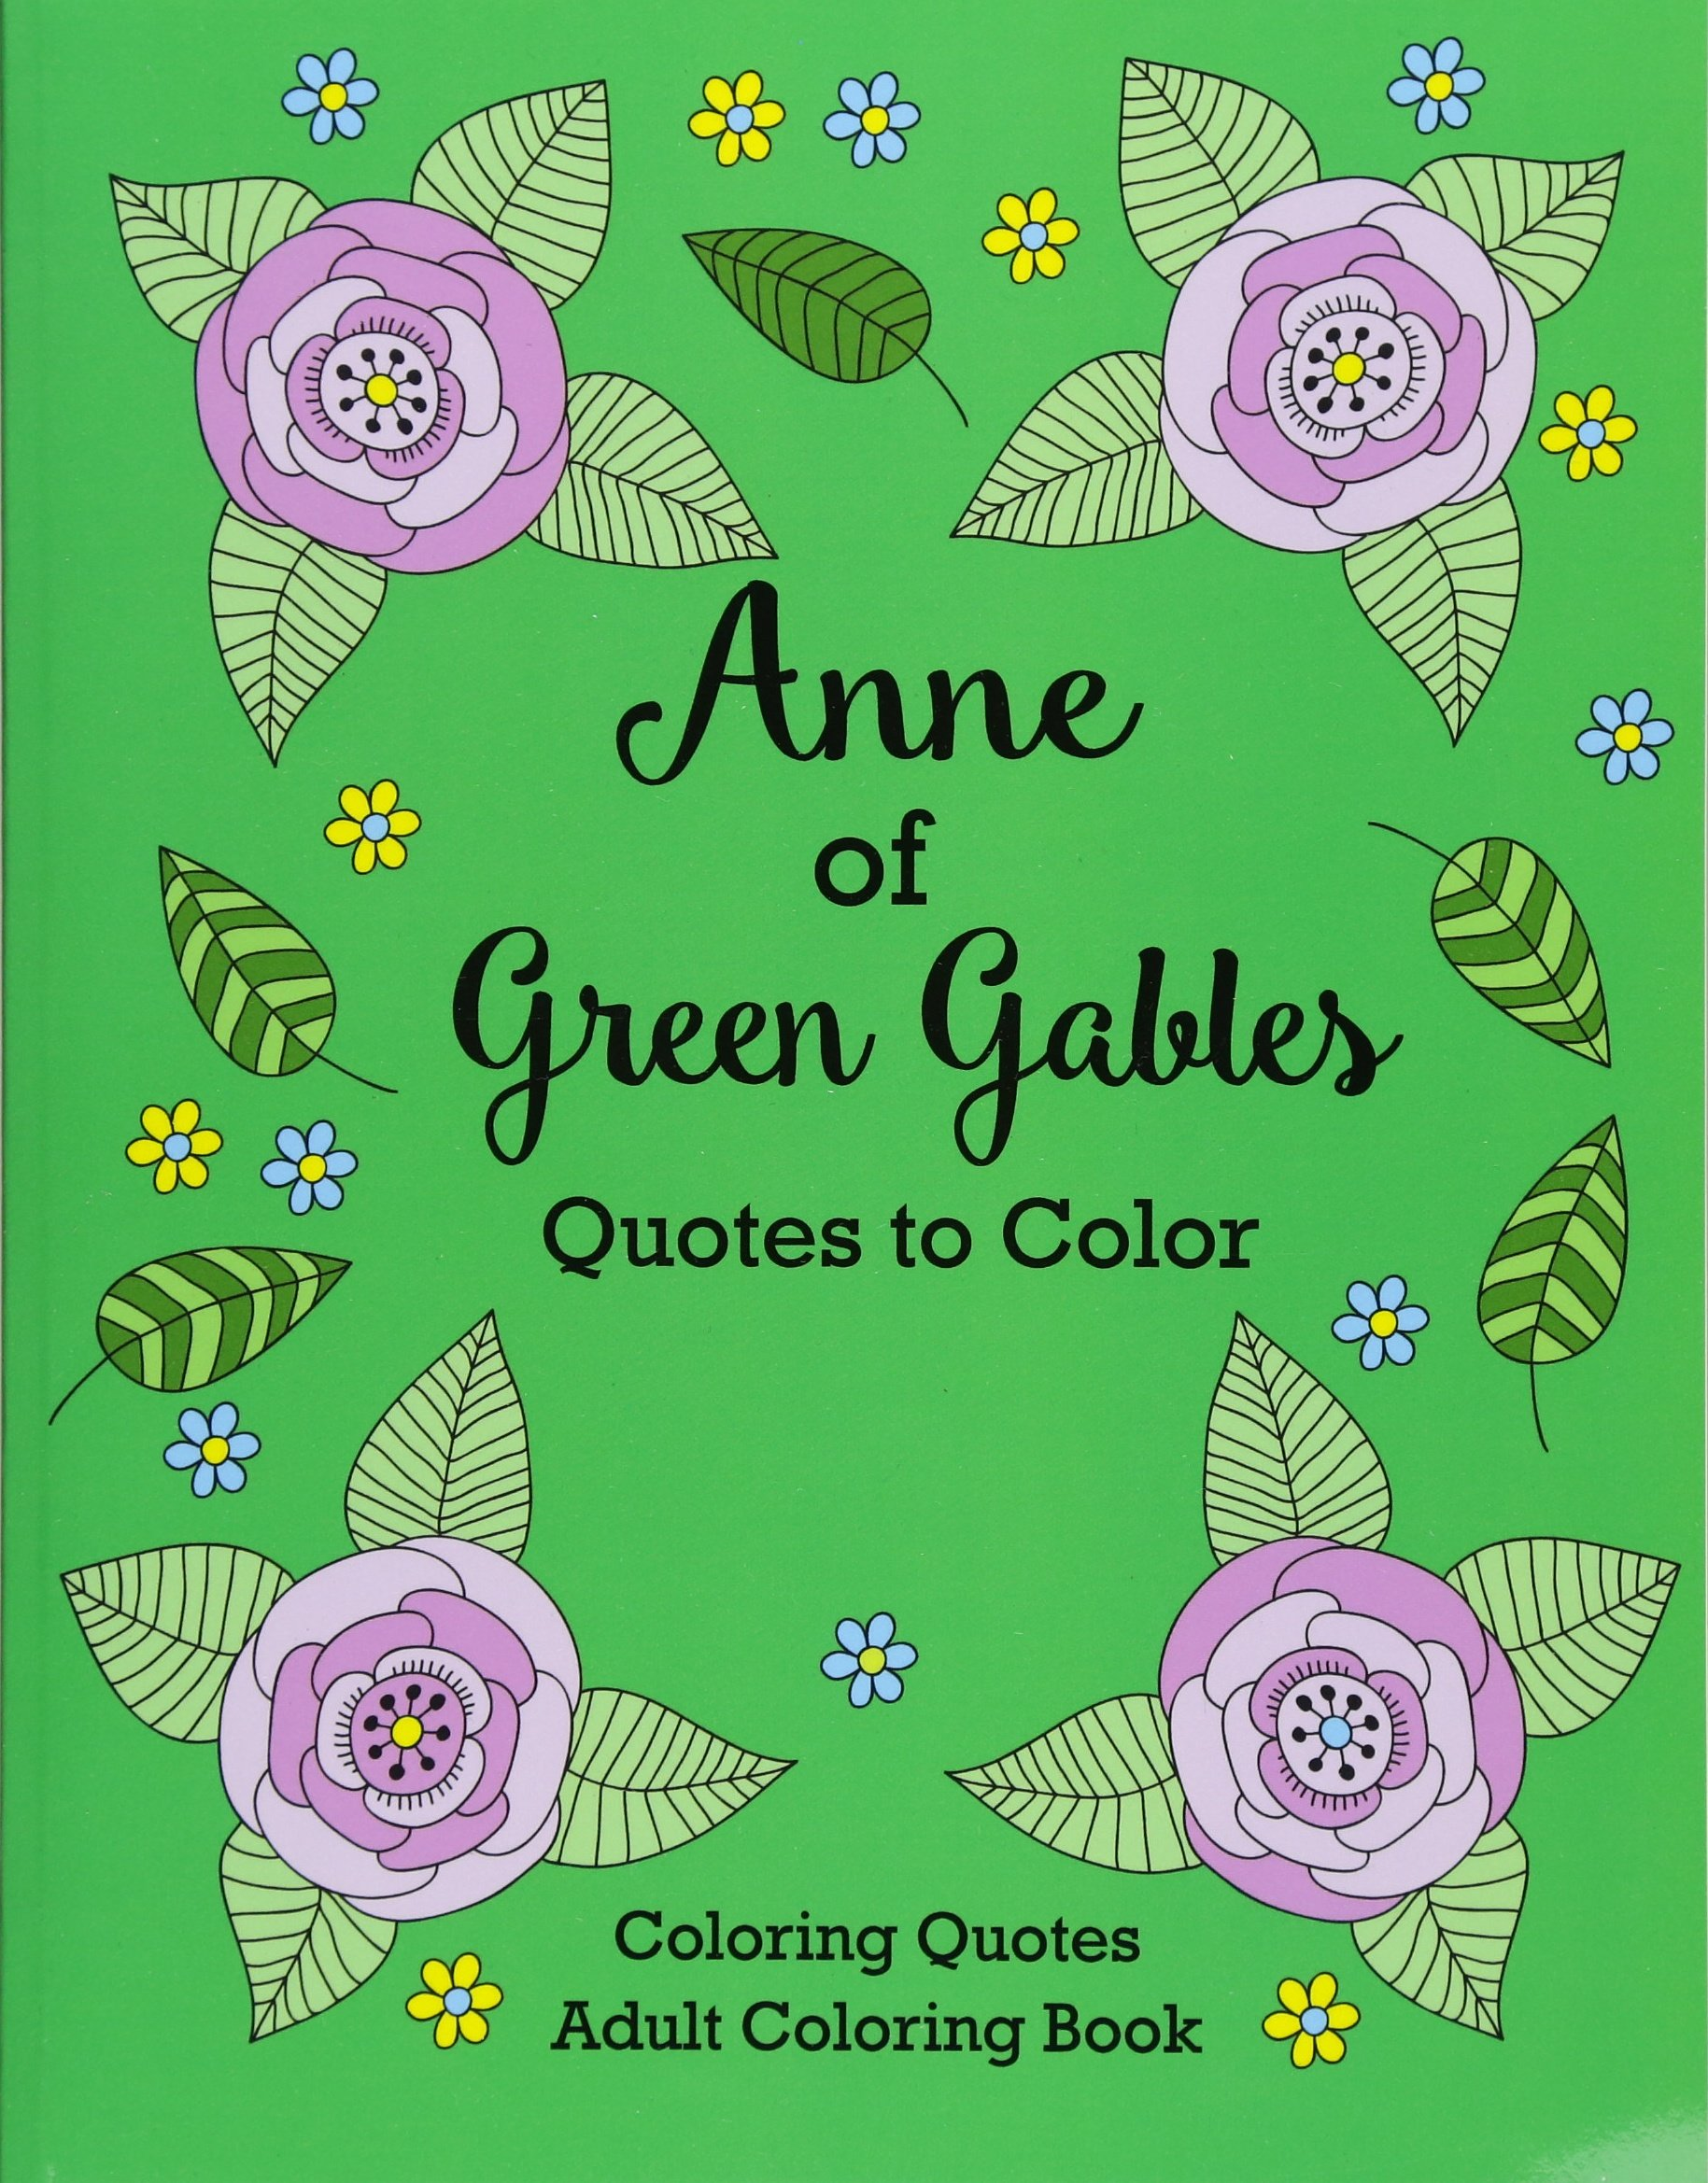 Anne Of Green Gables Quotes To Color Coloring Book Featuring Quotes From L M Montgomery Coloring Quotes Adult Coloring Books Montgomery L M Lee Calee M Publishing Xist 9781532400001 Amazon Com Books